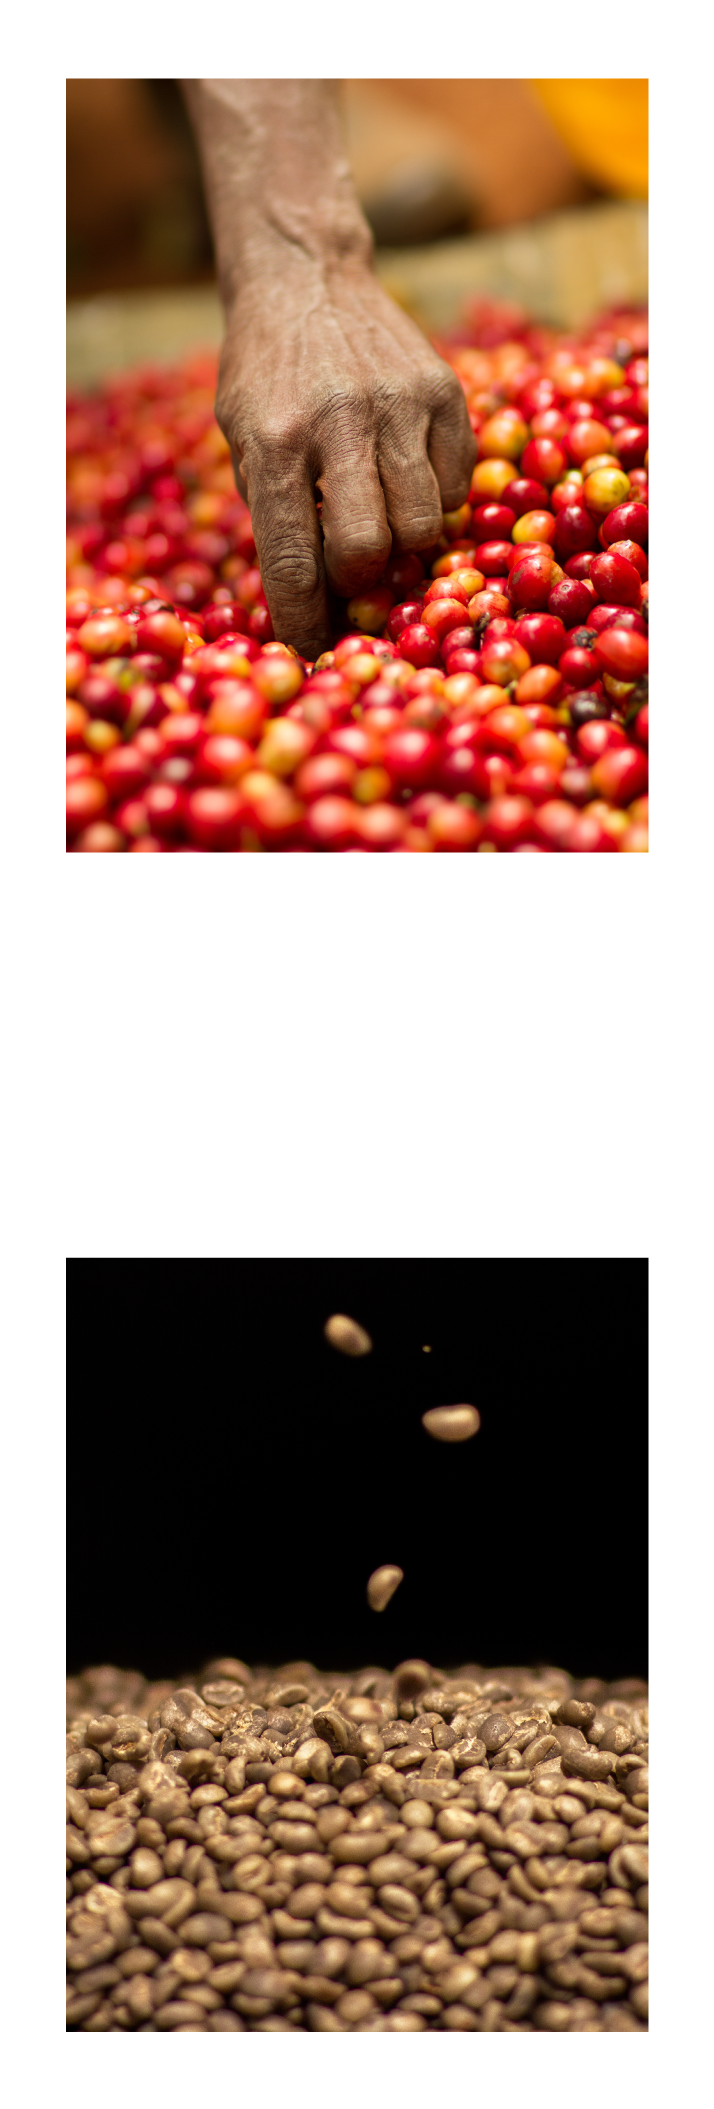 OUR STORY - Dormans was established in 1950 as Kenya's first coffee roastery. The founders, Charles and Ellen Dorman wanted to bring the coffee drinking experience closer to home. Until then, coffee from the region had only been exported in its raw or green form. Sadly, Charles died a premature death in 1960 but Ellen carried on the business determined to fulfill his dream.In her quest to provide a delightful coffee drinking experience to every consumer, Ellen creatively developed unique coffee blend formulations to meet the varied taste profiles of the different market segments. It was this passion and commitment that earned her the nickname 'The grand old dame of coffee'. Many of her blend formulations remain popular to this day.In 1986 Jeremy Block, in partnership with a UK multinational, purchased the business from a retiring Ellen.Over the years, Dormans has pioneered many initiatives to spur local consumption and today, is the most trusted coffee brand in the East African market.MILESTONESYear 2002Dormans set up Africa's first Coffee Training School, Nairobi School of Coffee.Dormans has connected many of the graduates to their hospitality clients, thus contributing to the employment of thousands of youth. The NSoC certificate is well sought-after by employers seeking to recruit qualified Baristas at their restaurants and coffee shops.Year 2003Dormans pioneered the introduction of the Kenya National Barista Championships in Nairobi. The event has grown in popularity over the years.The event has helped enhance awareness of a Barista as a professional coffee maker.Winners compete at the World Barista Championships, an event organized by the Specialty Coffee Association of Europe and the Specialty Coffee Association of America.Year 2004Dormans opened its first Coffee shop - a chain of shops followed.Year 2005Dormans introduced 'Coffee on the Go' serving delightful coffee from a Mobile Coffee Cart, the first ever in the region.Year 2013Dormans sold the assets of th